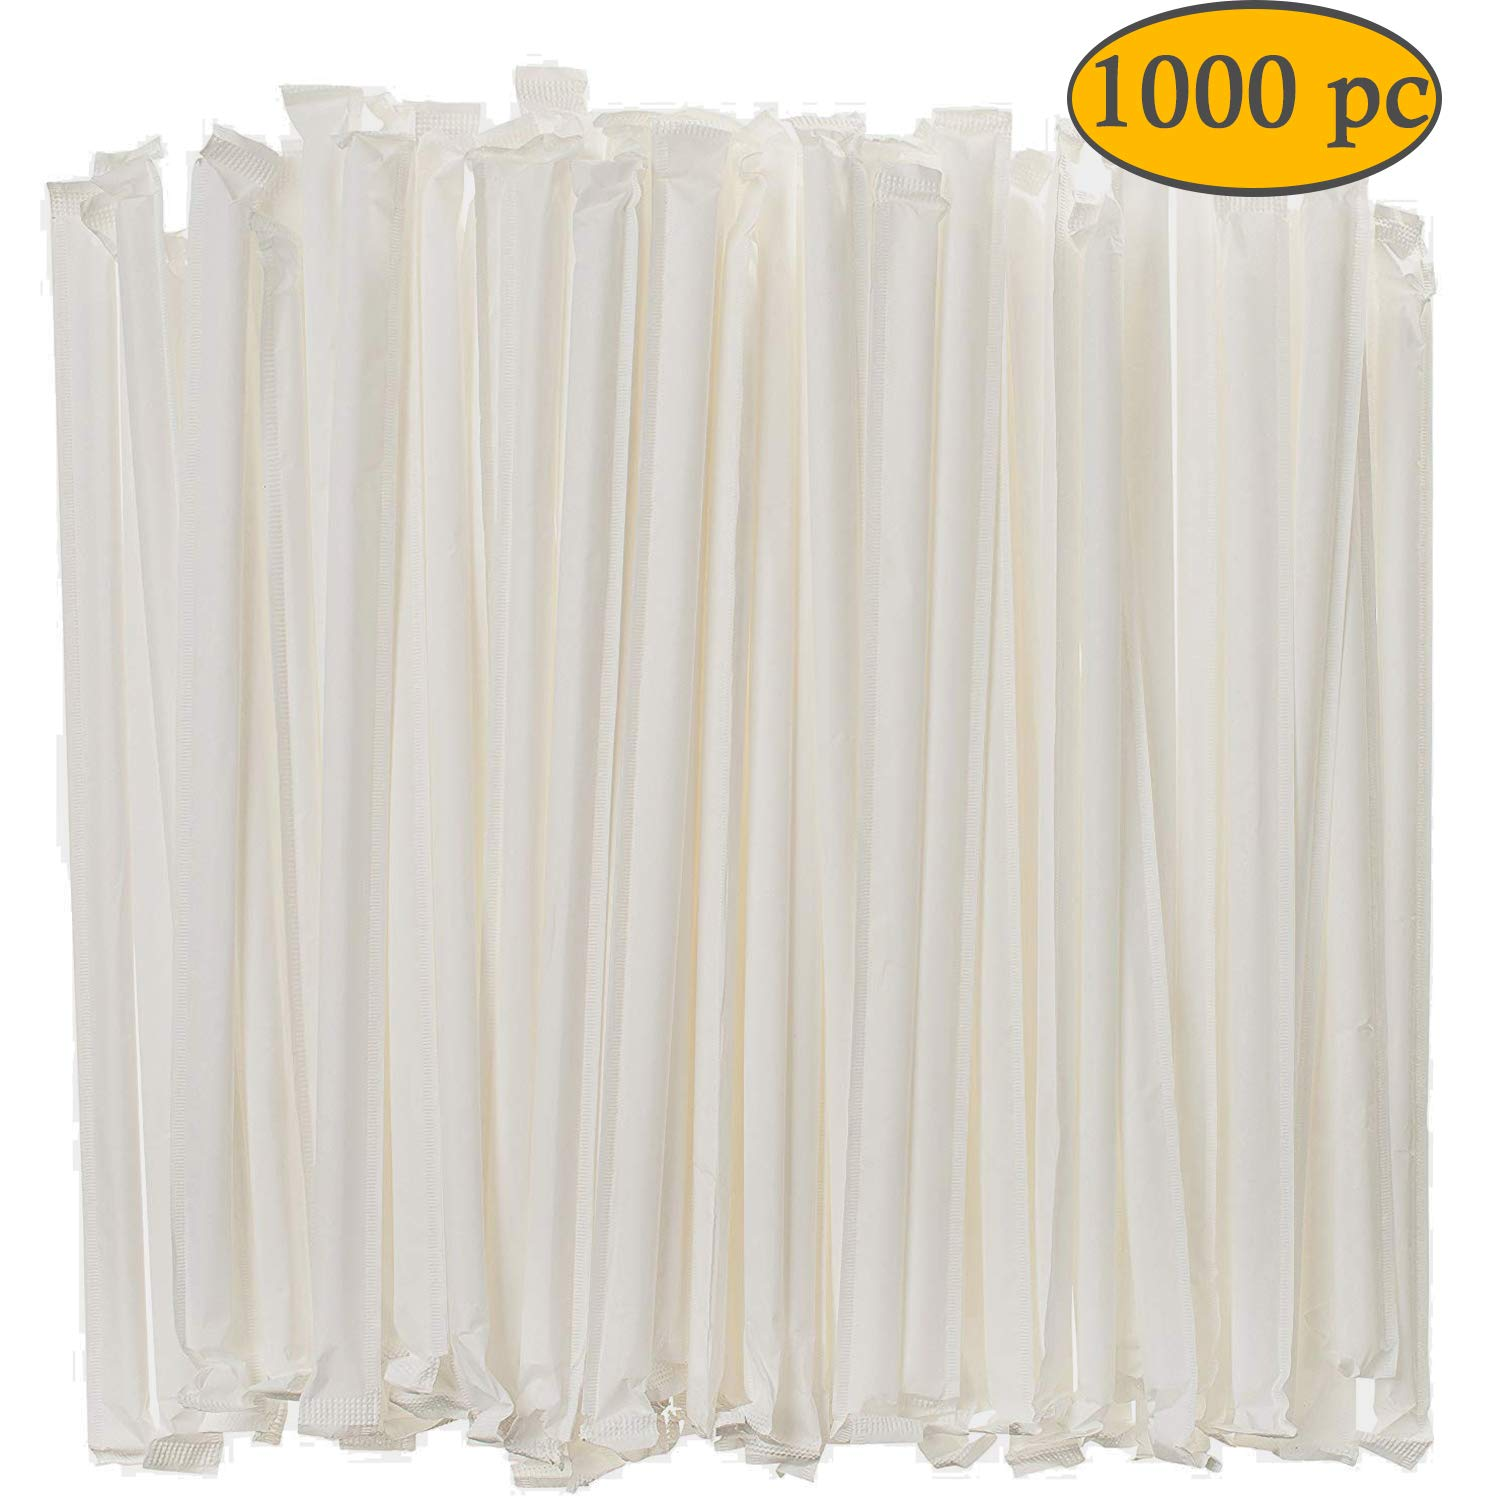 Pailles emball/ées individuellement 19,1 cm de long claire sans BPA Pailles jetables style restaurant 1000 Straws 2 Boxes of 500 each DuraHomeAZB Lot de 500 pailles en plastique transparent